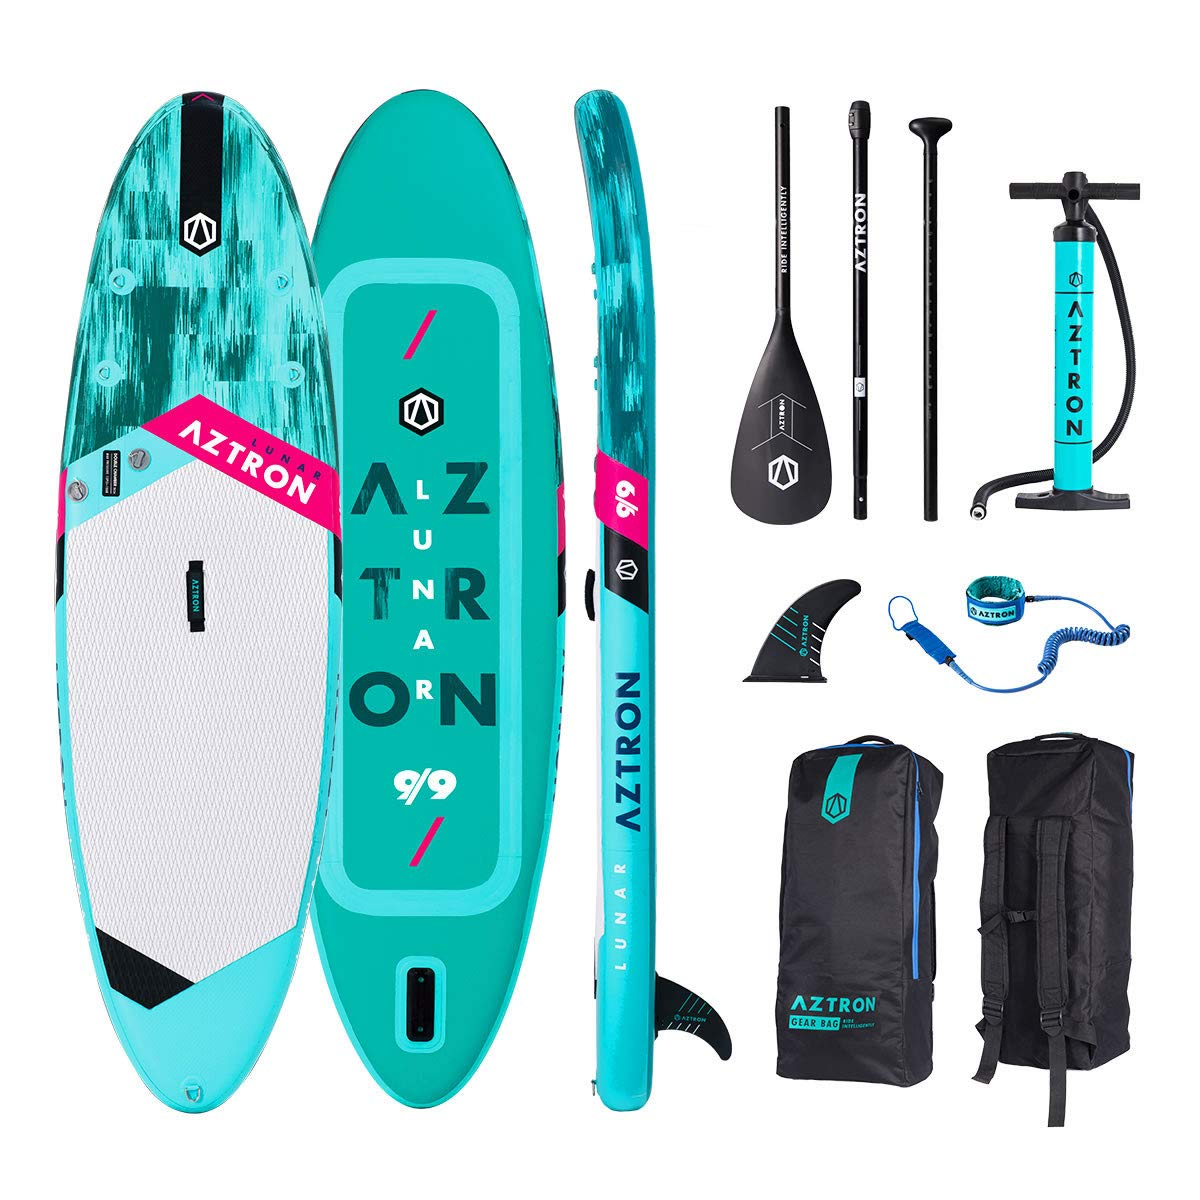 Aztron Lunar 9.9 Inflatable Sup Stand Up Paddle Board Set ...